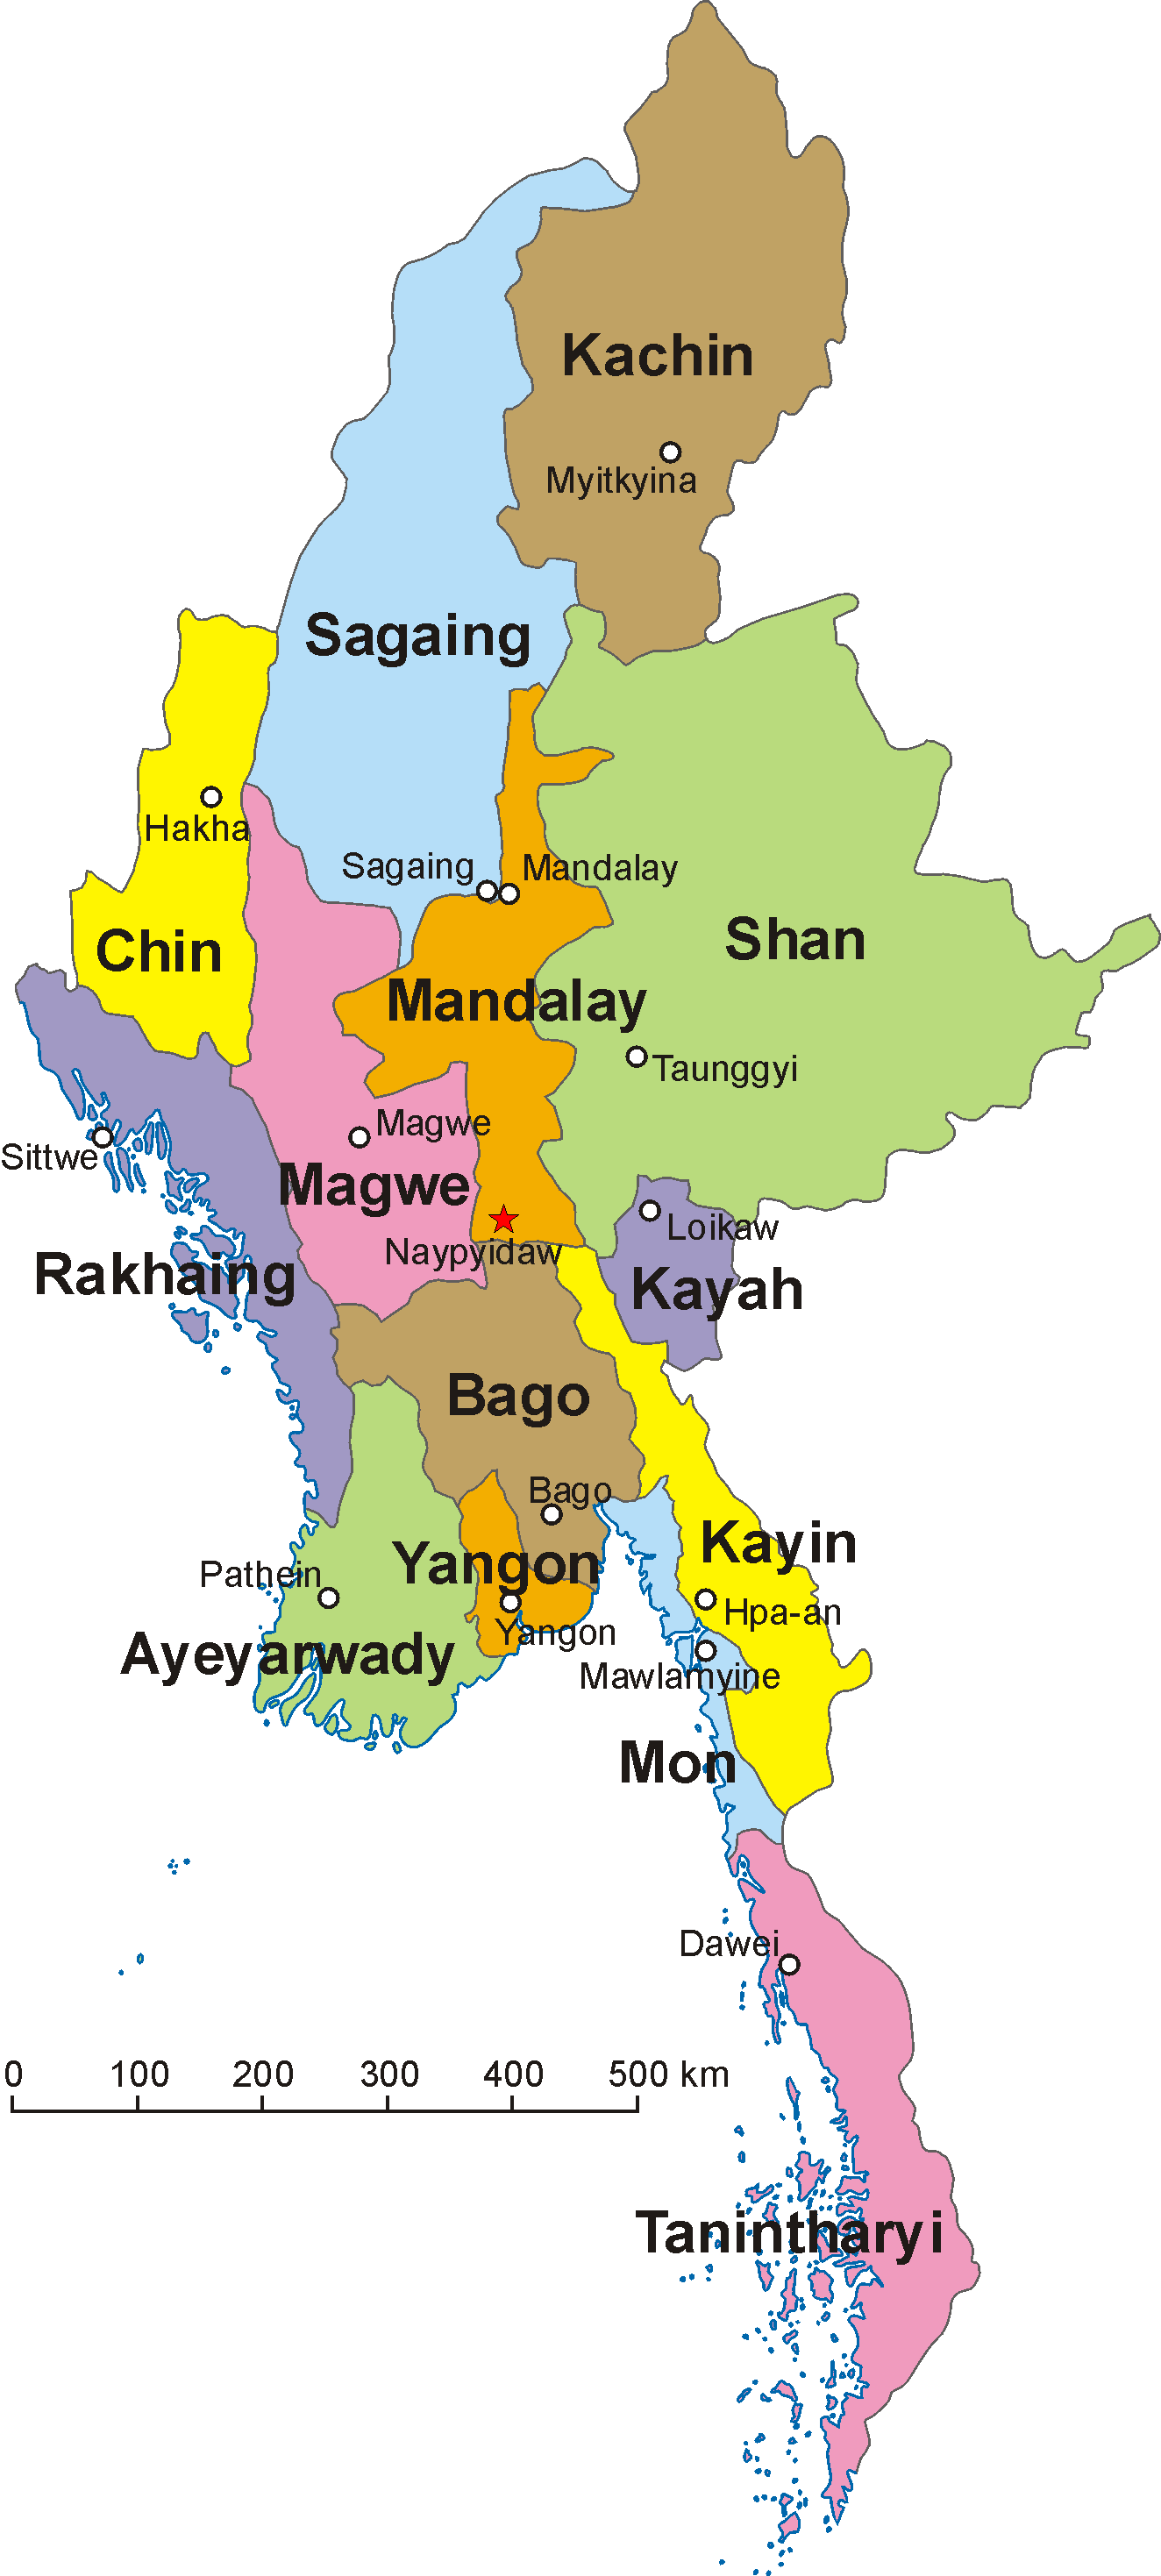 FileBurma Enpng Wikimedia Commons - Burma map download